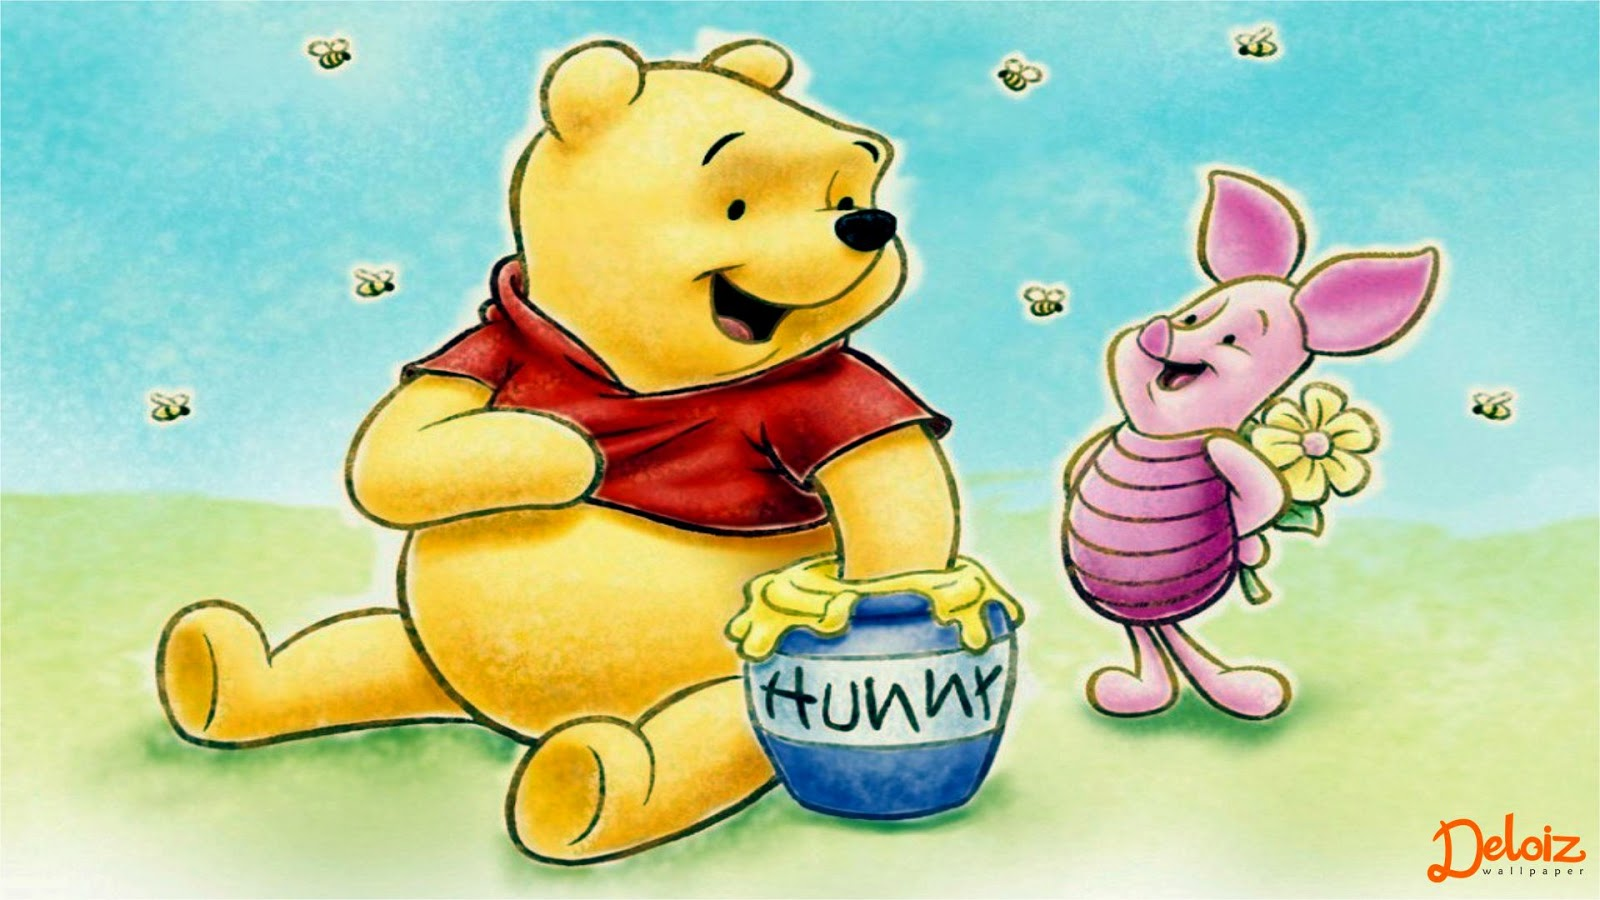 Wallpaper Atau DP BBM Winnie The Pooh HD Khusus Android 2015